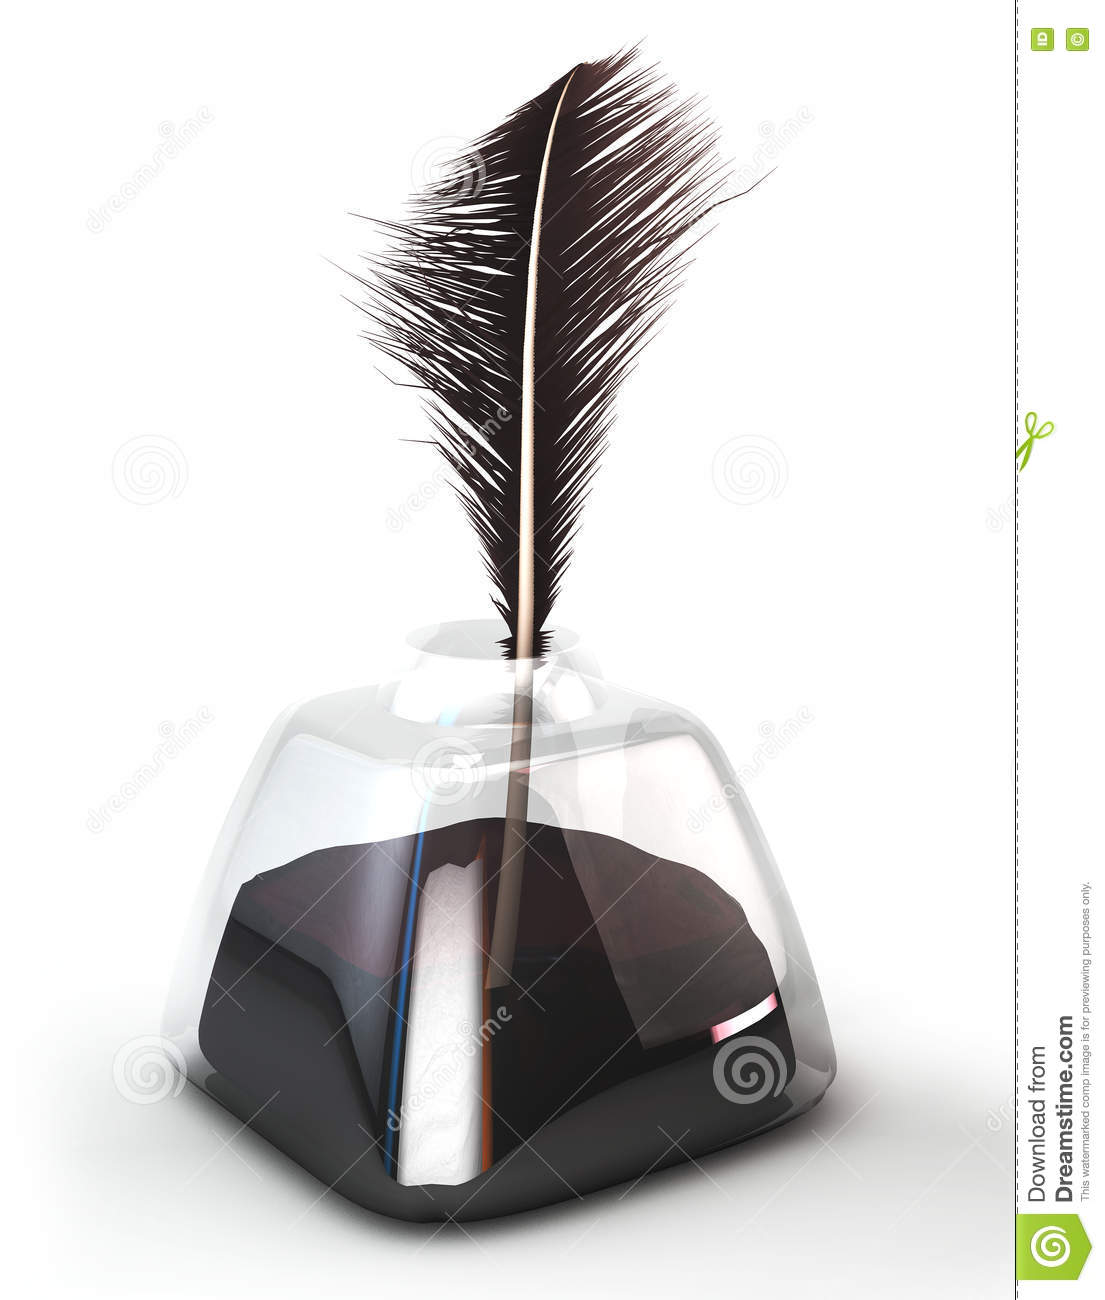 Feather quill in glass inkwell. Feather pen in the ink pot. Isolated on white. 3d illustration